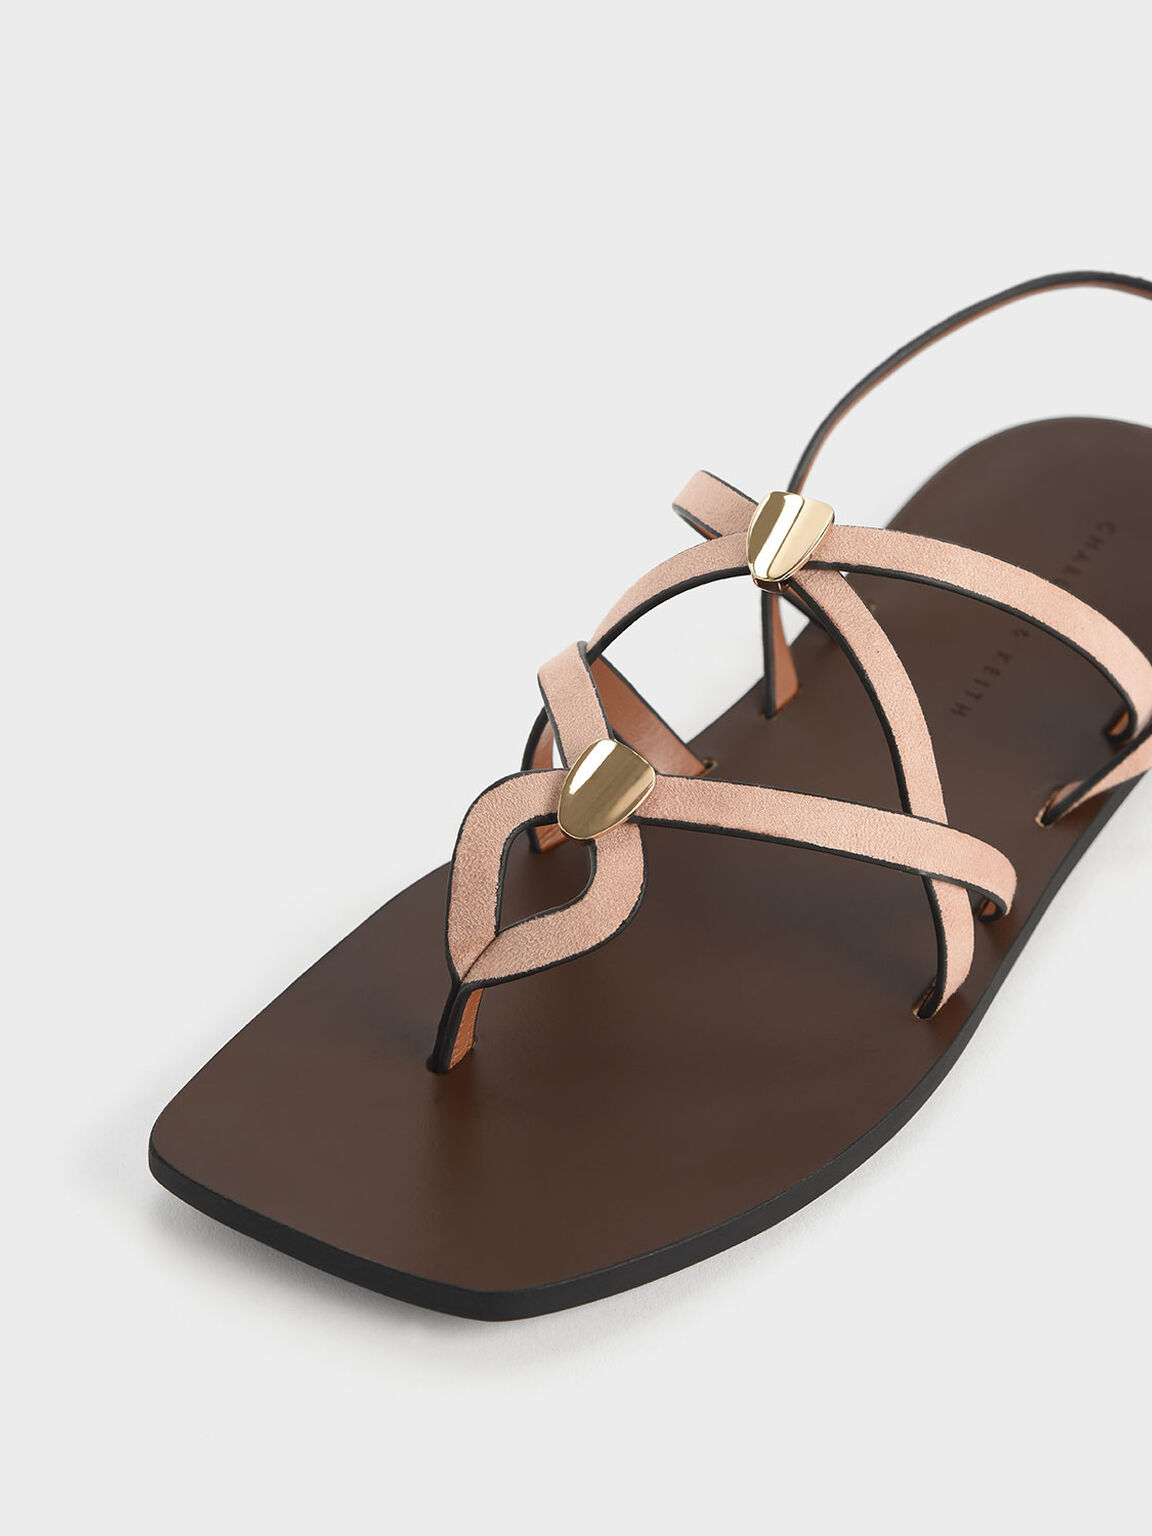 Criss Cross Metal Accent Textured Strappy Sandals, Nude, hi-res